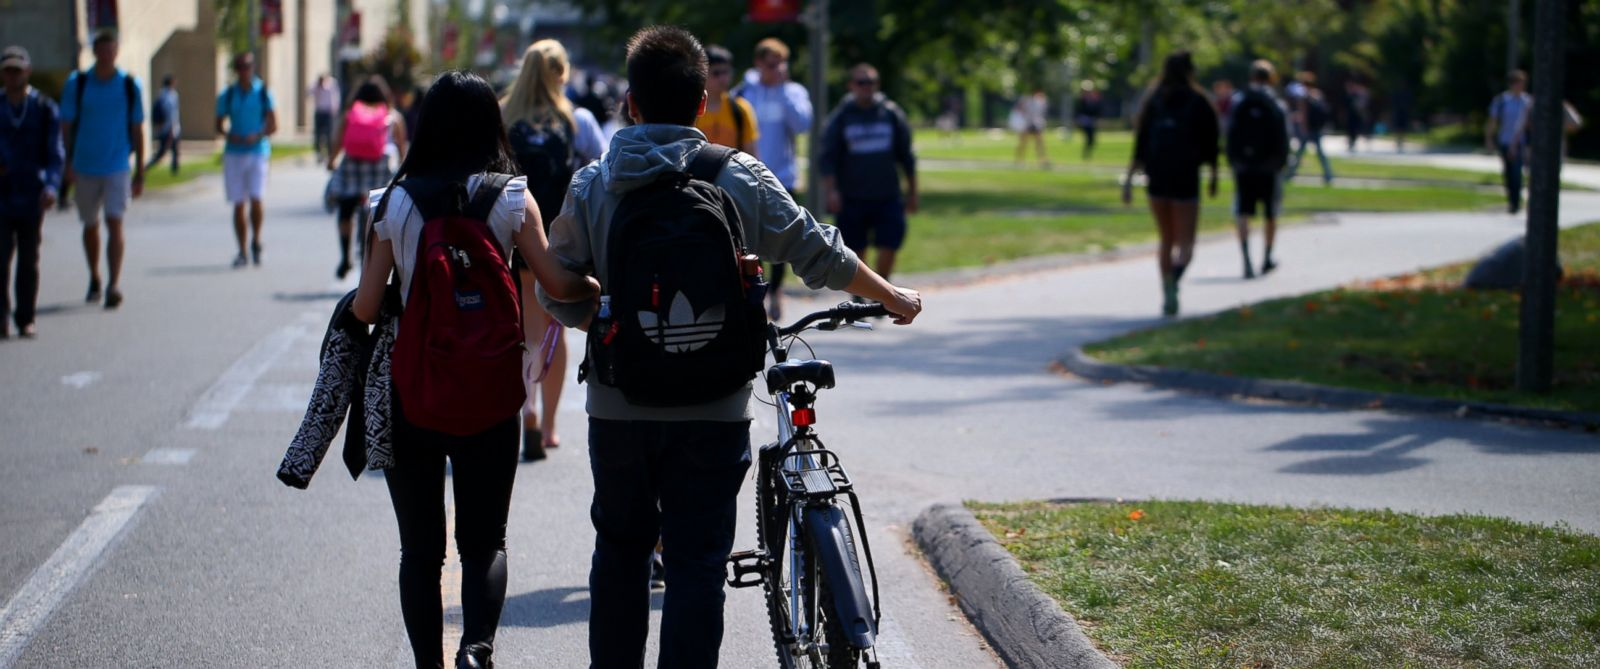 PHOTO: Students on the campus of UMass Amherst, Sept. 17, 2014.